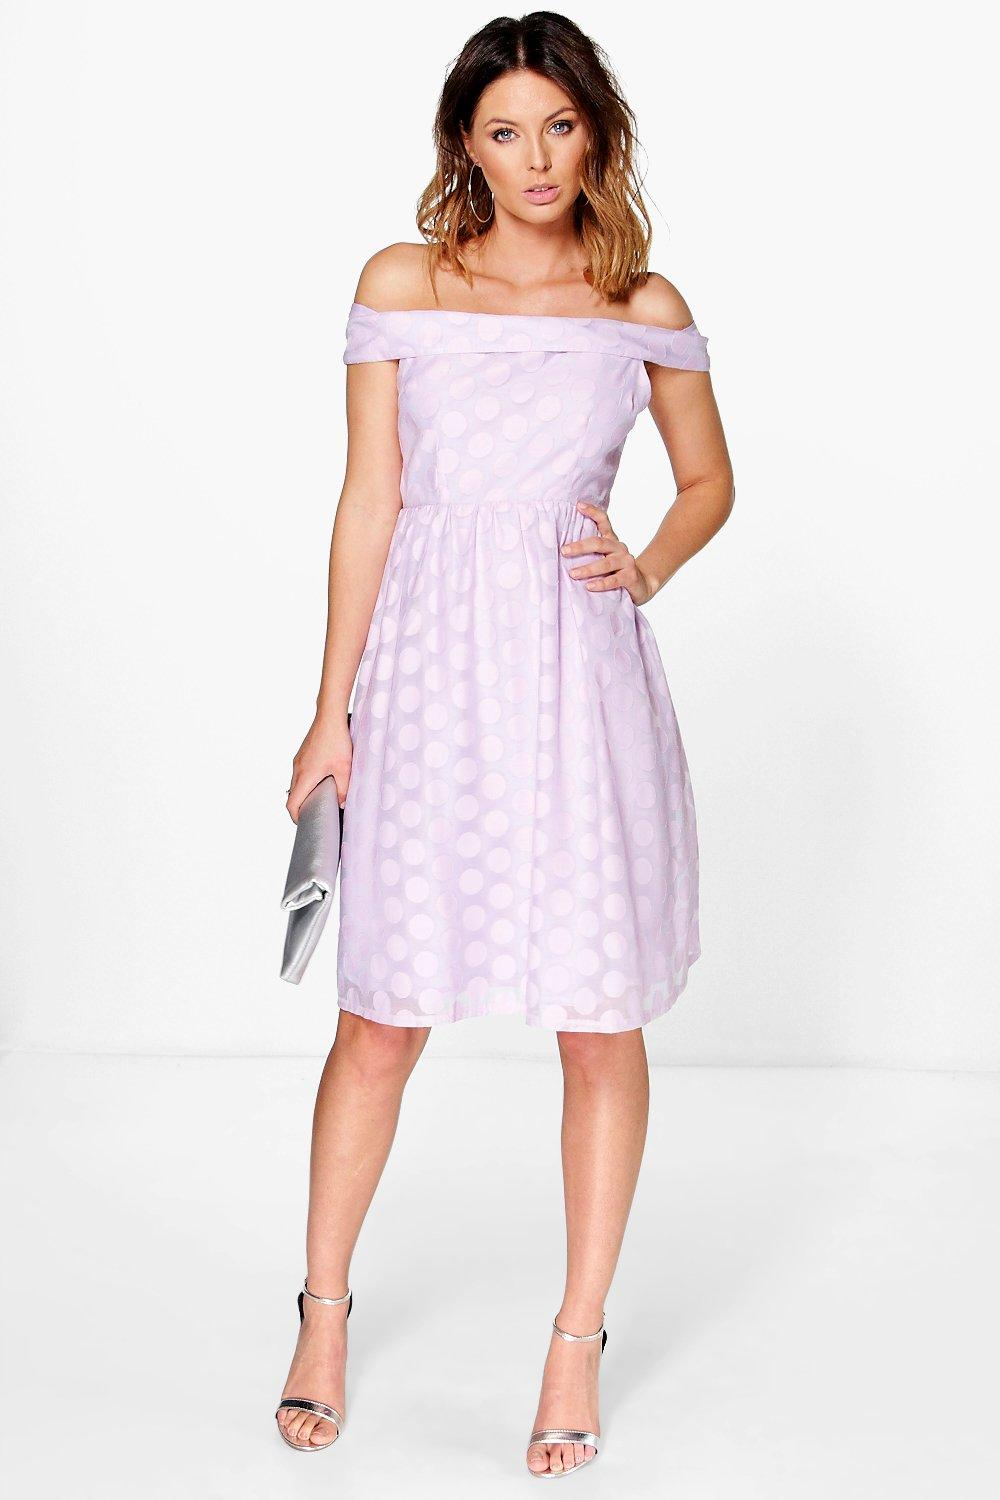 Layla Polka Dot Organza Skirt Off Shoulder Dress